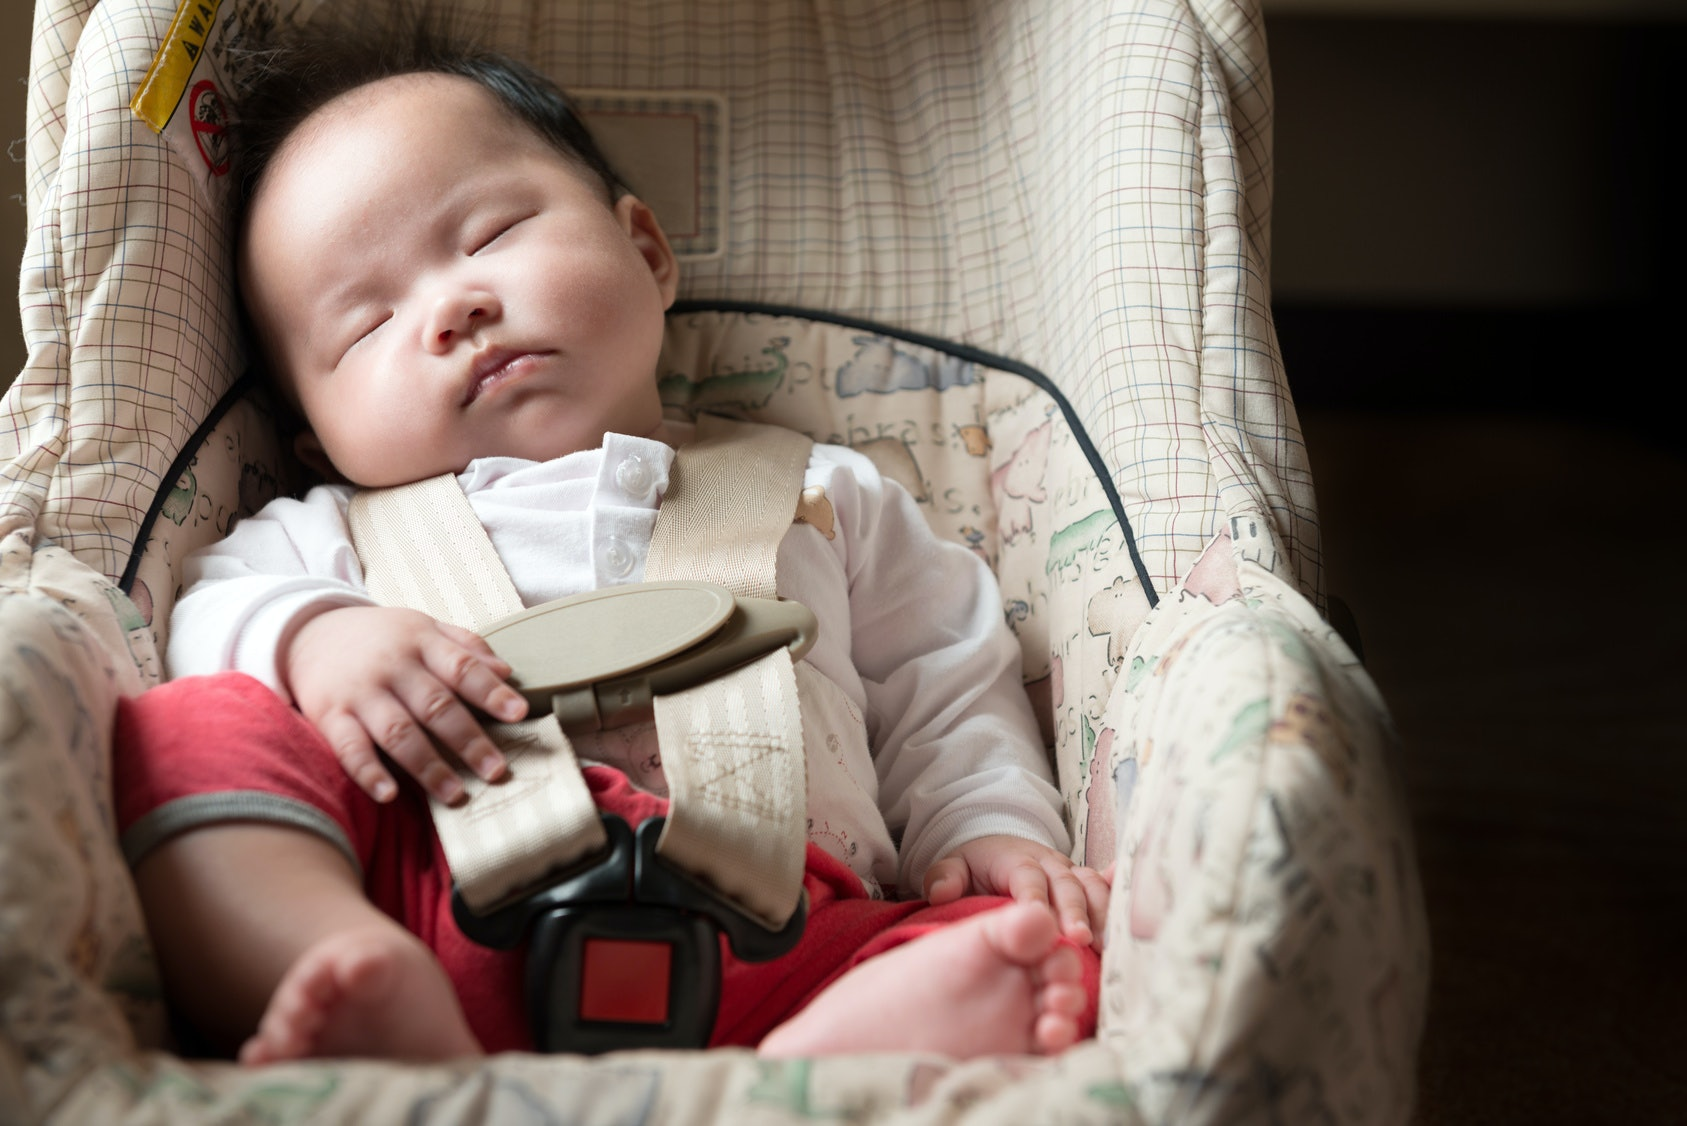 Is It Safe For A Baby To Sleep In A Car Seat?